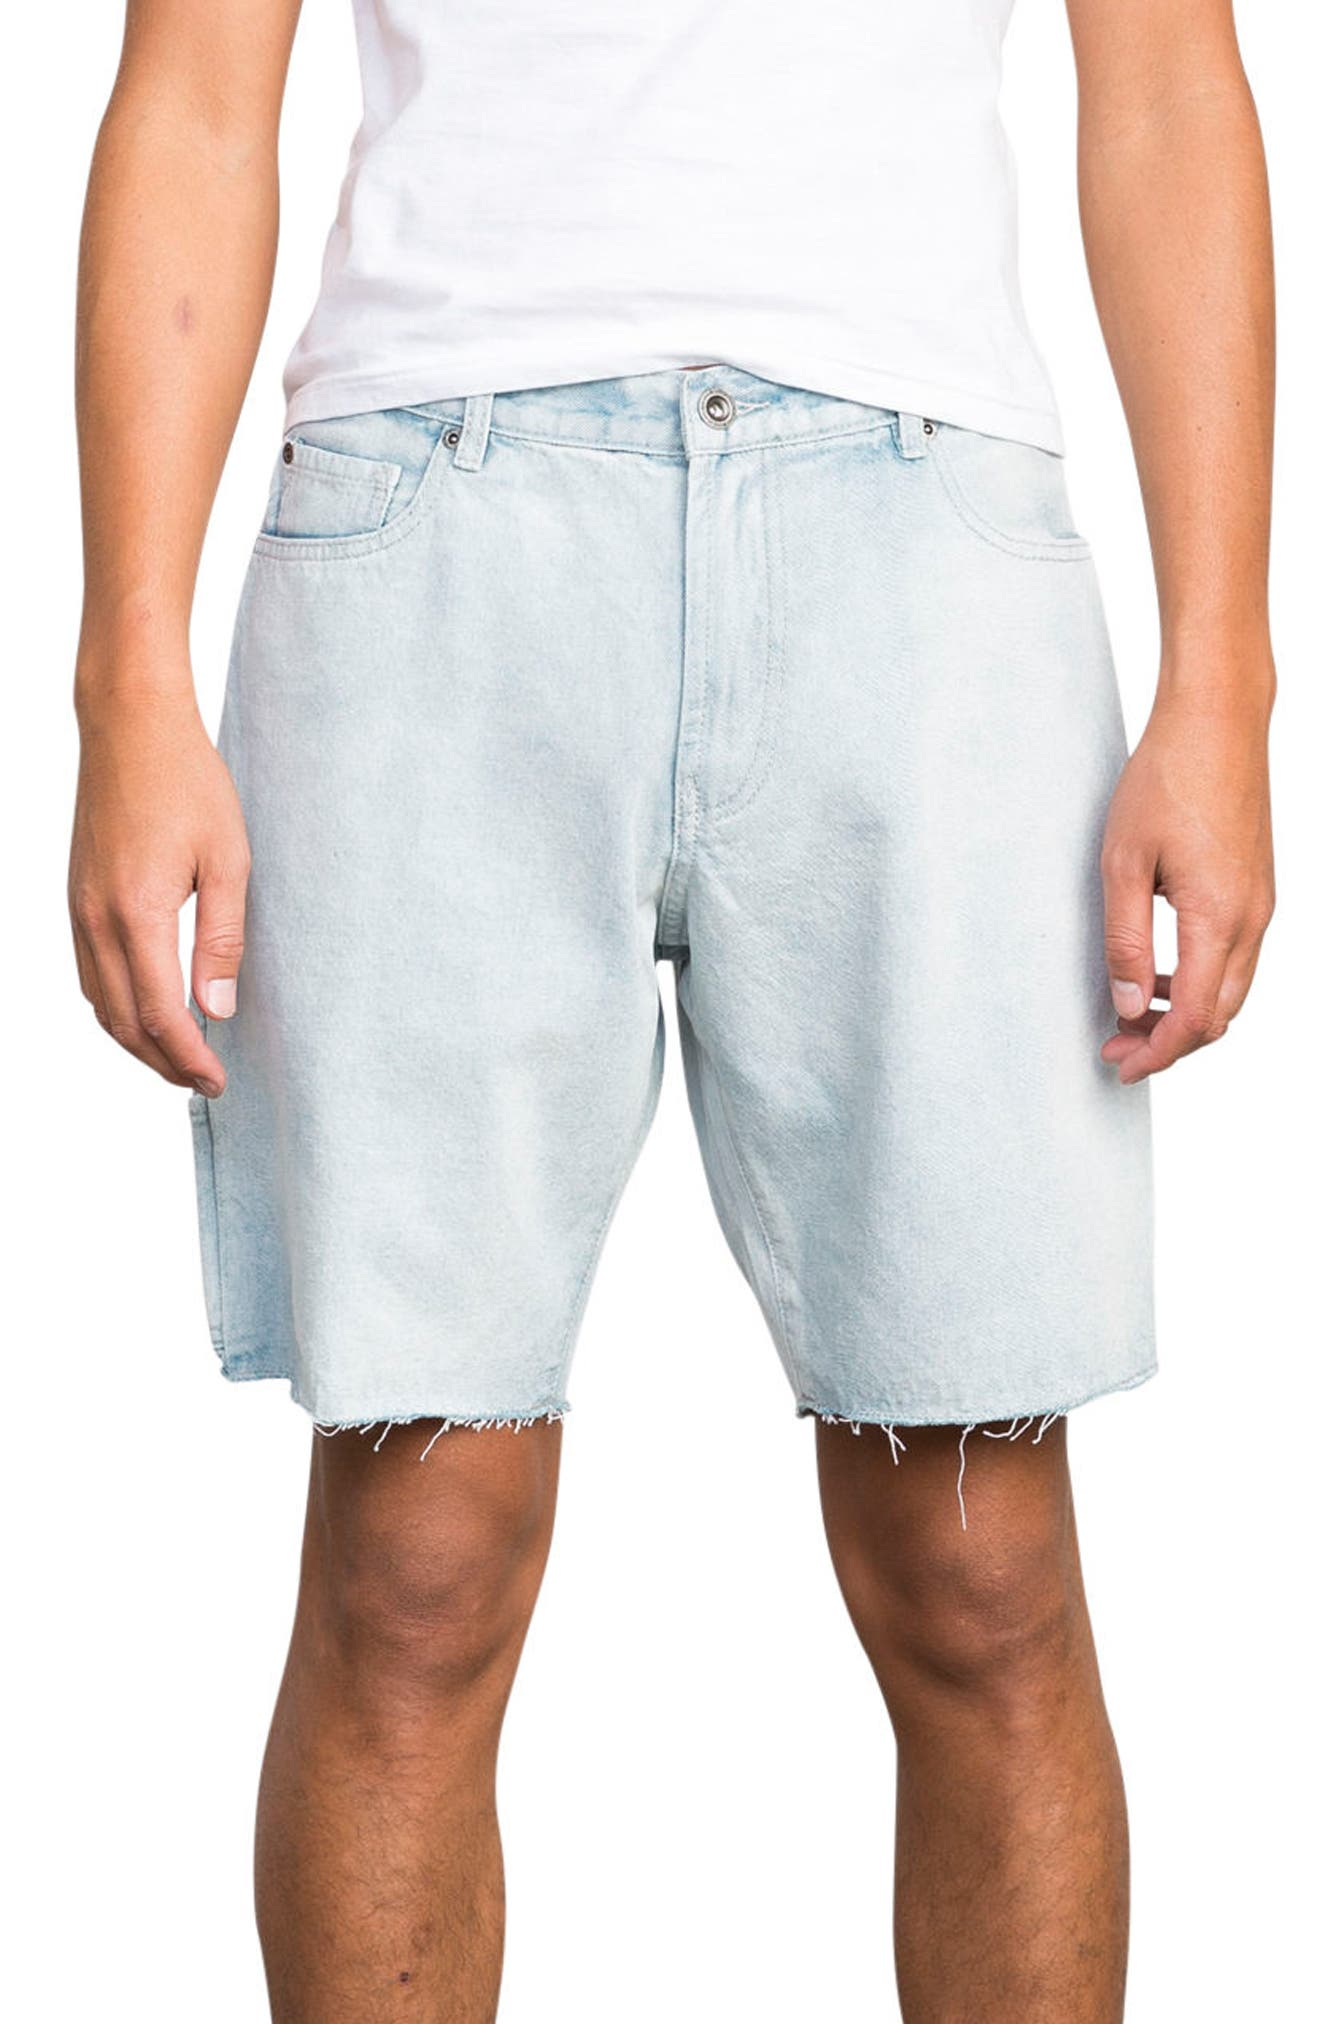 Work It Denim Shorts,                             Main thumbnail 1, color,                             Denim